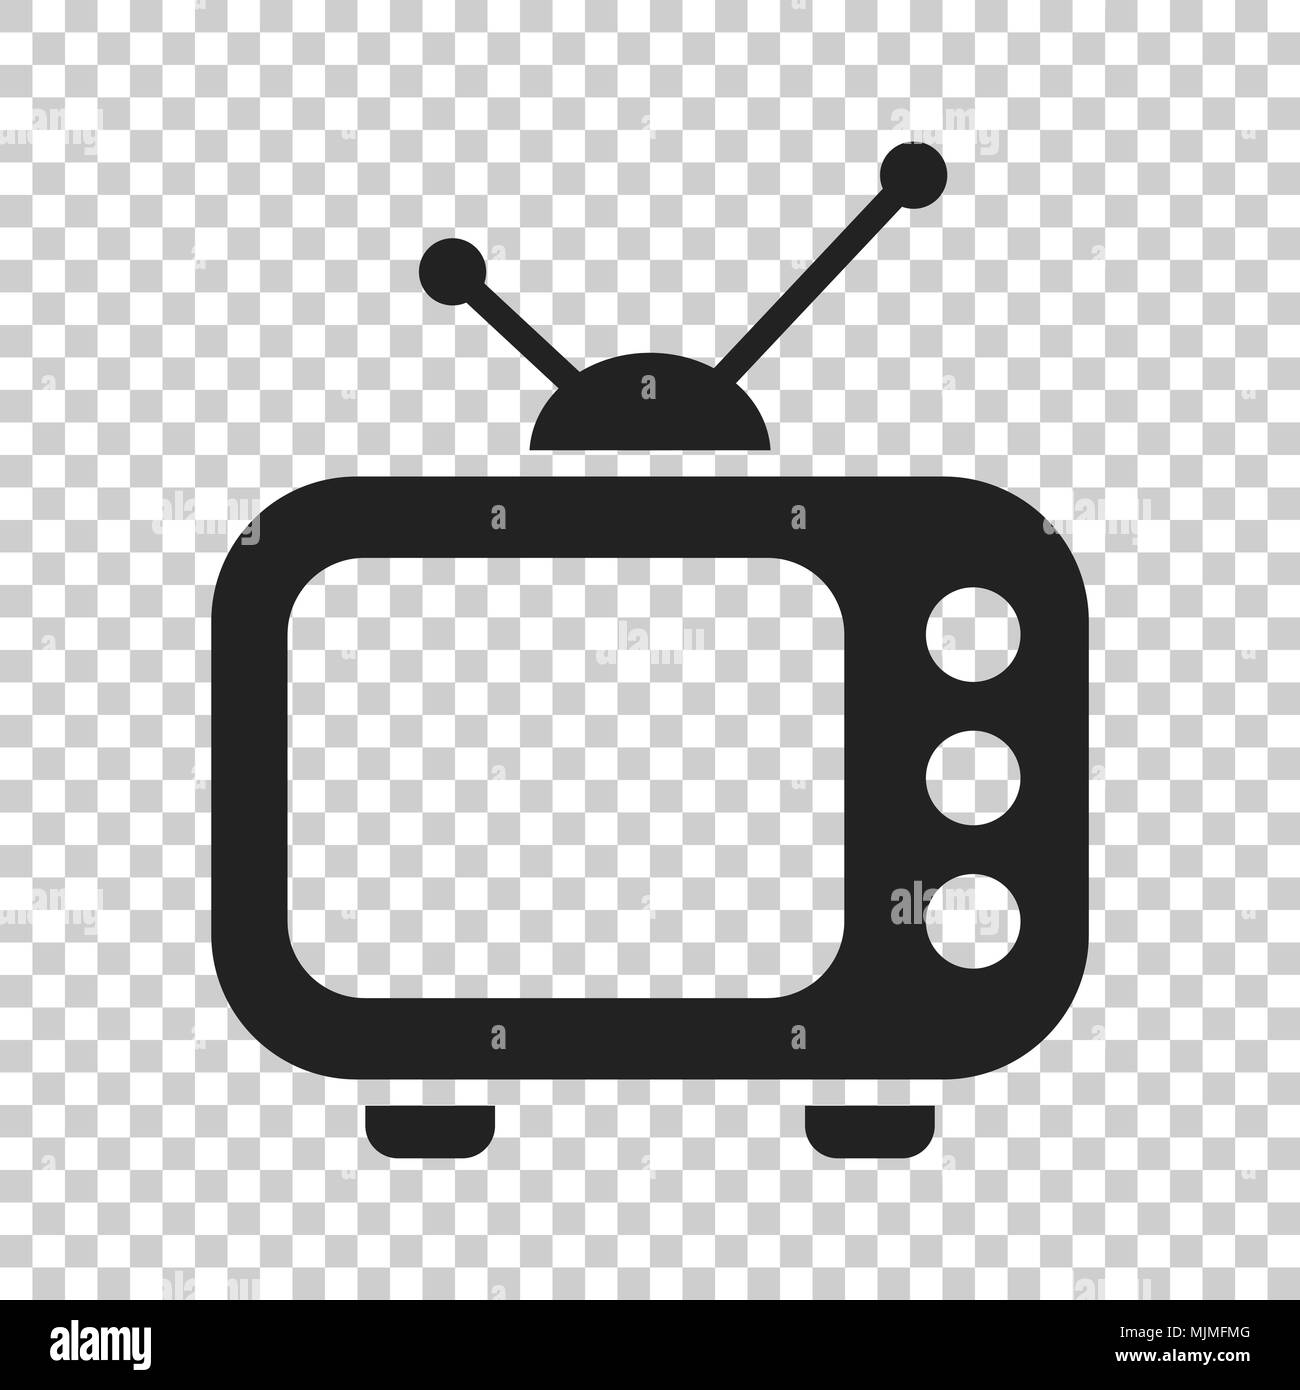 Television monitor in flat style. Tv screen illustration on isolated transparent background. Tv show concept. - Stock Image